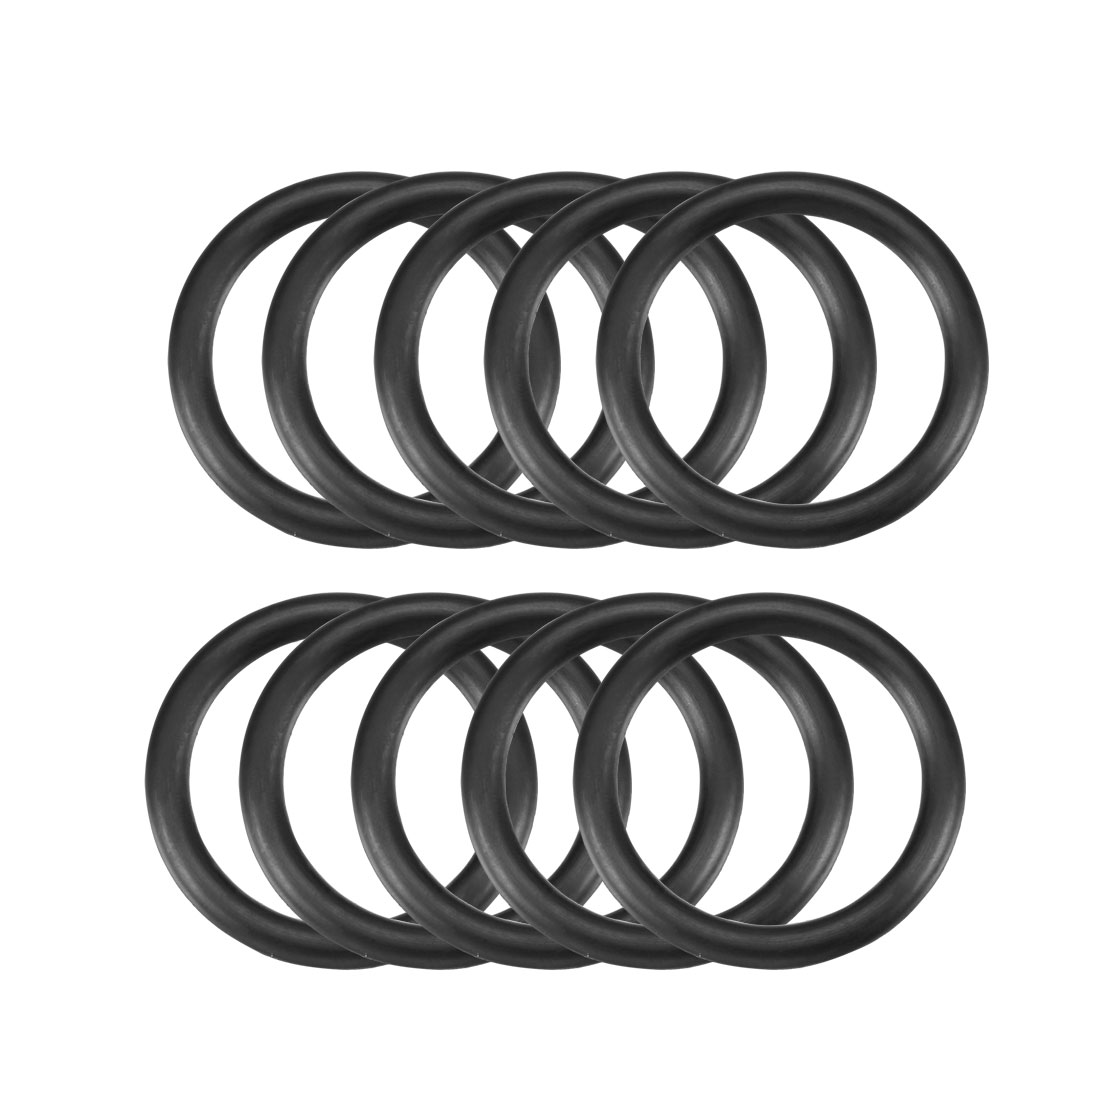 5mm x 44mm Nitrile Rubber O Type Sealing Ring Gasket Grommets Black 10Pcs